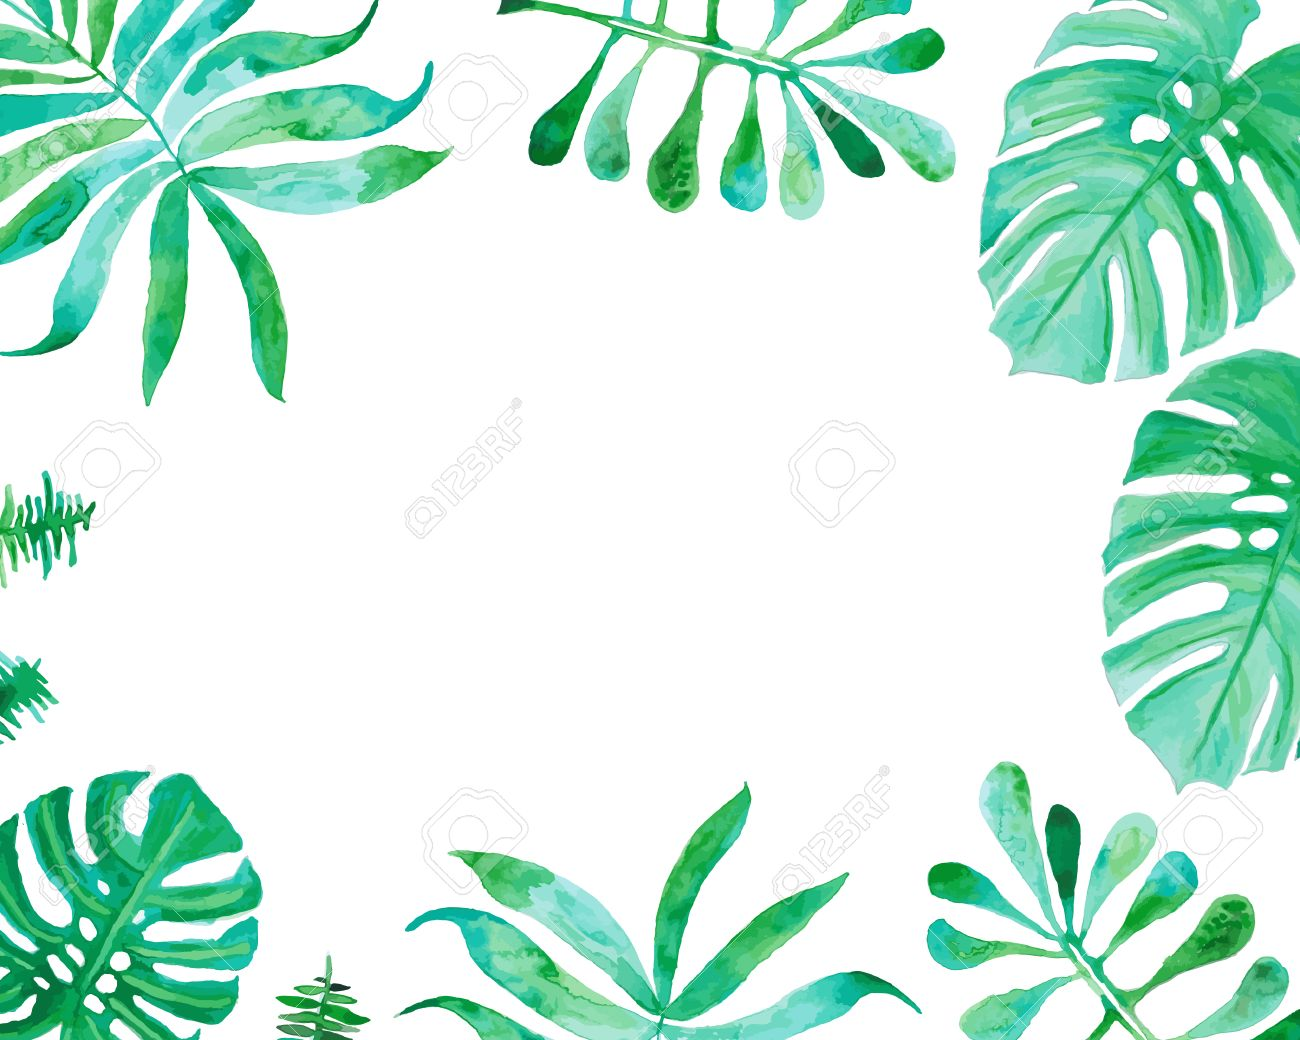 1300x1040 Watercolor Drawing, Palm Trees Or Green Leaves Royalty Free